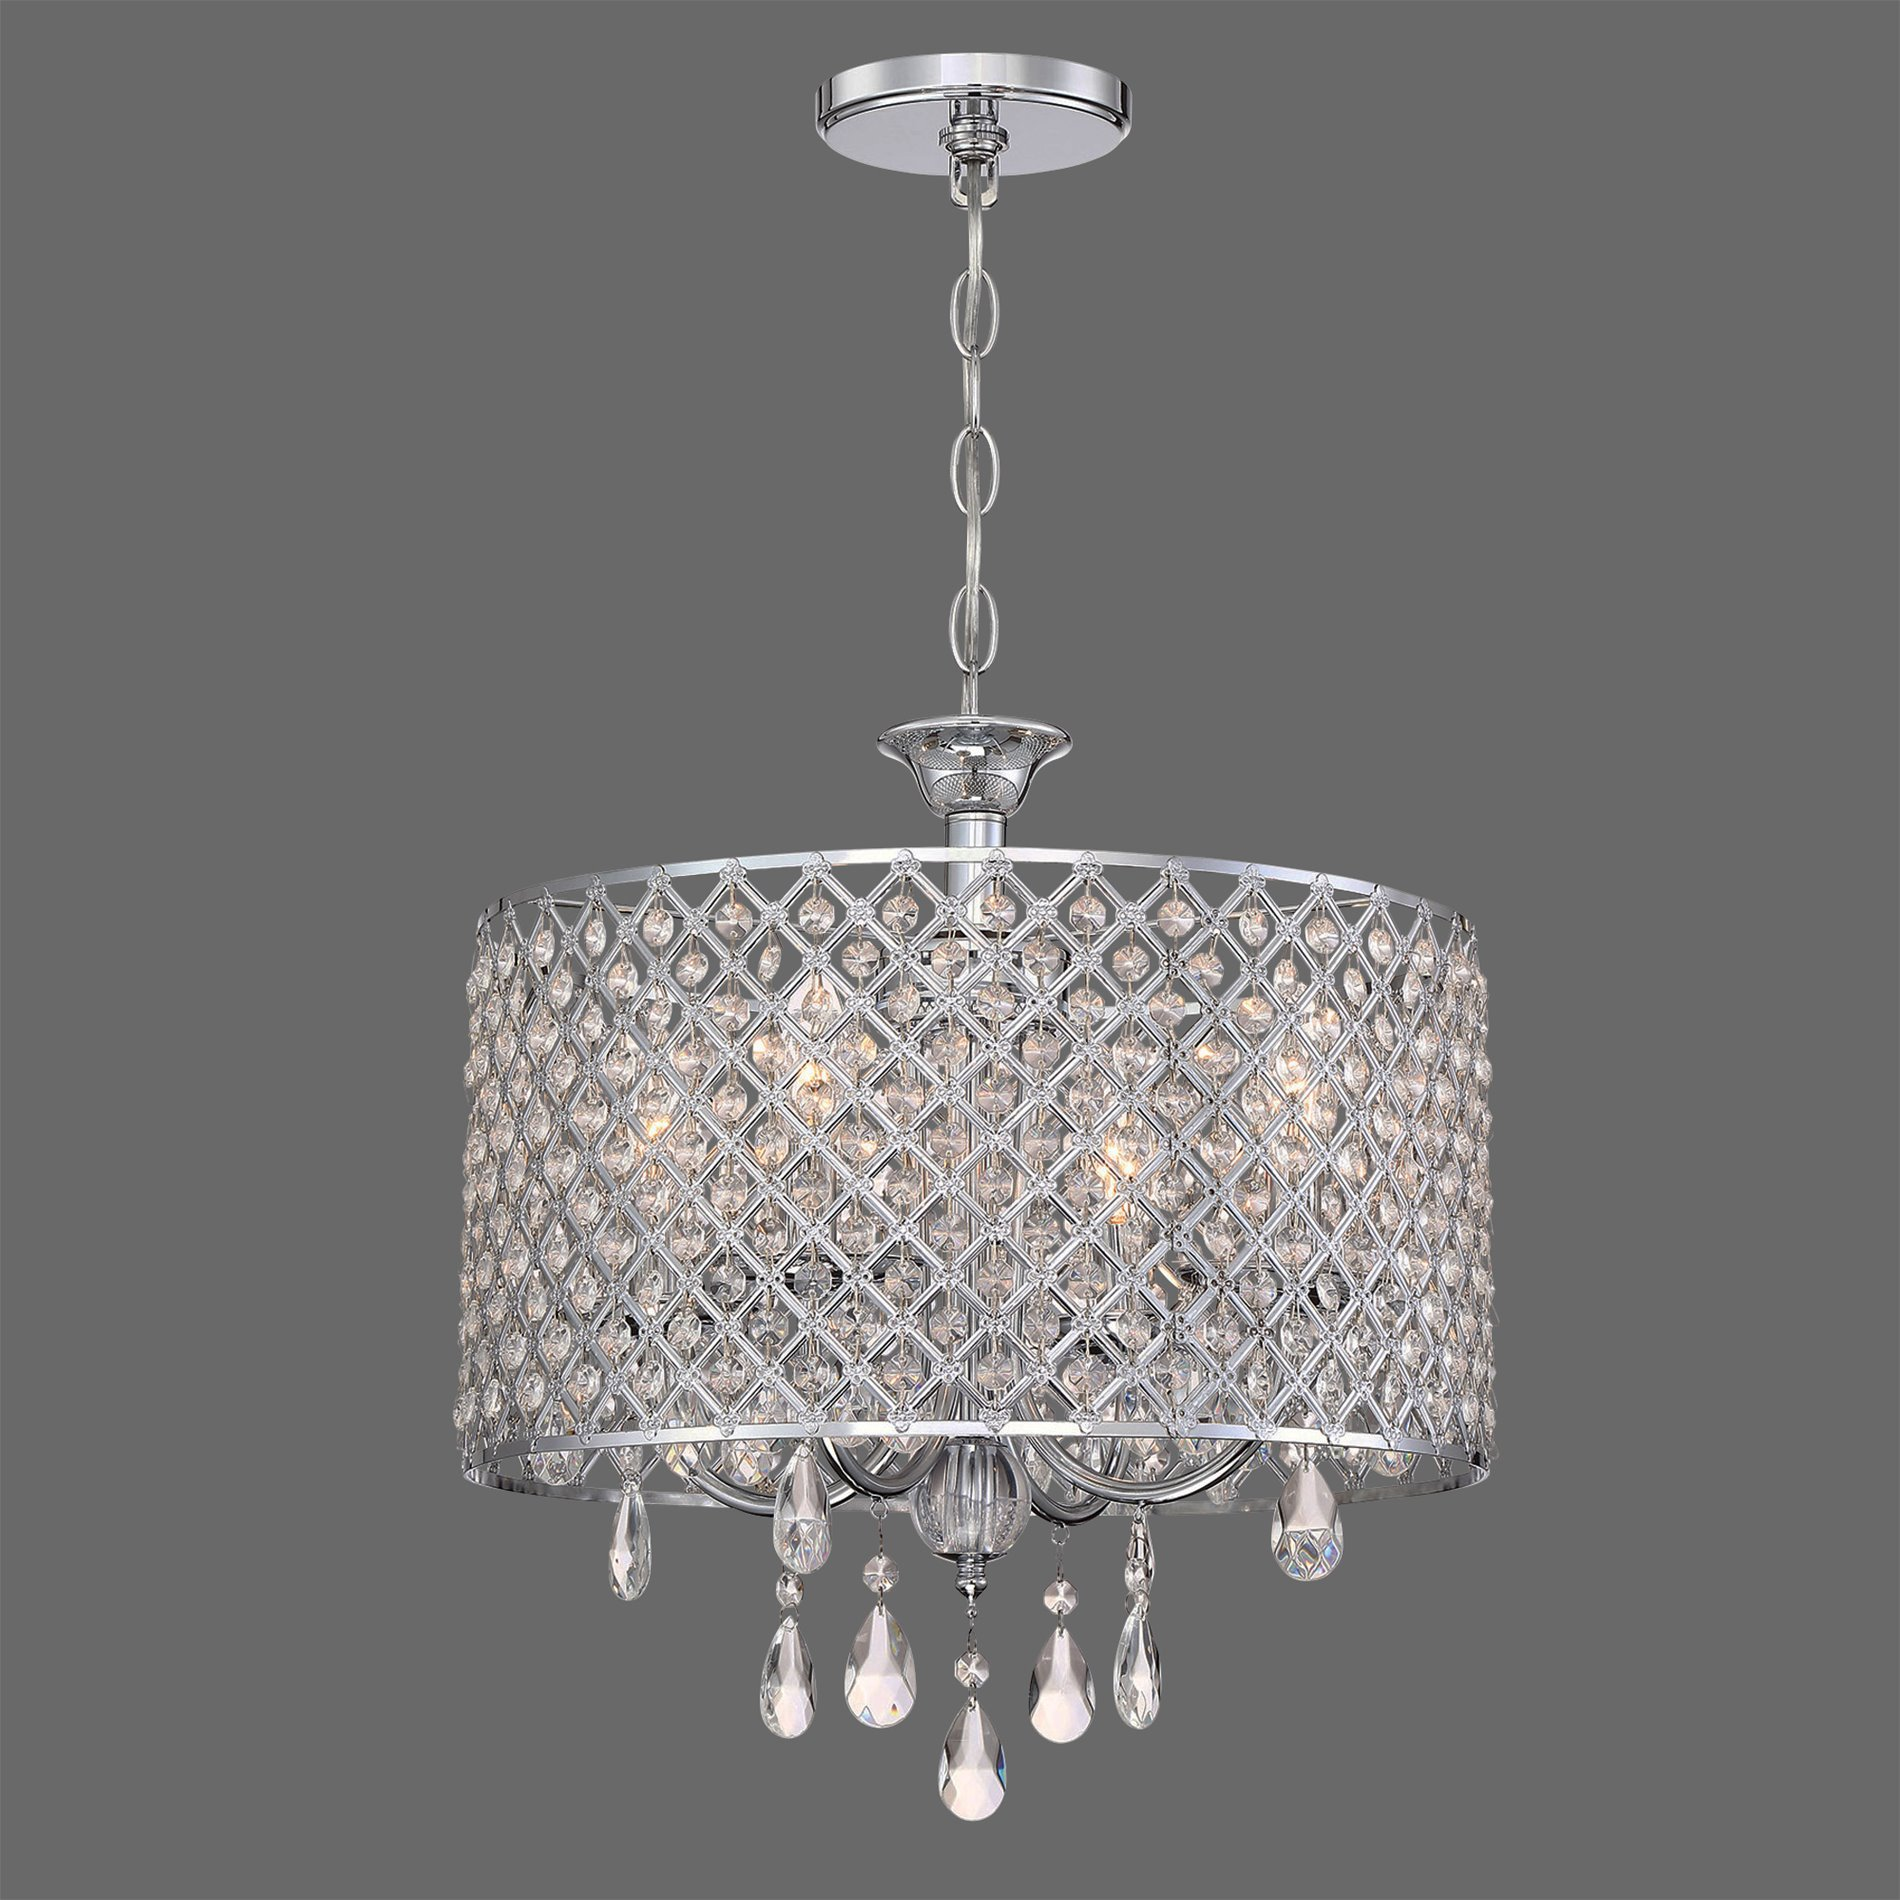 large chandelier ceiling best lights and gallery attachment chandeliers explore crystal extra showing in lighting of newest furniture